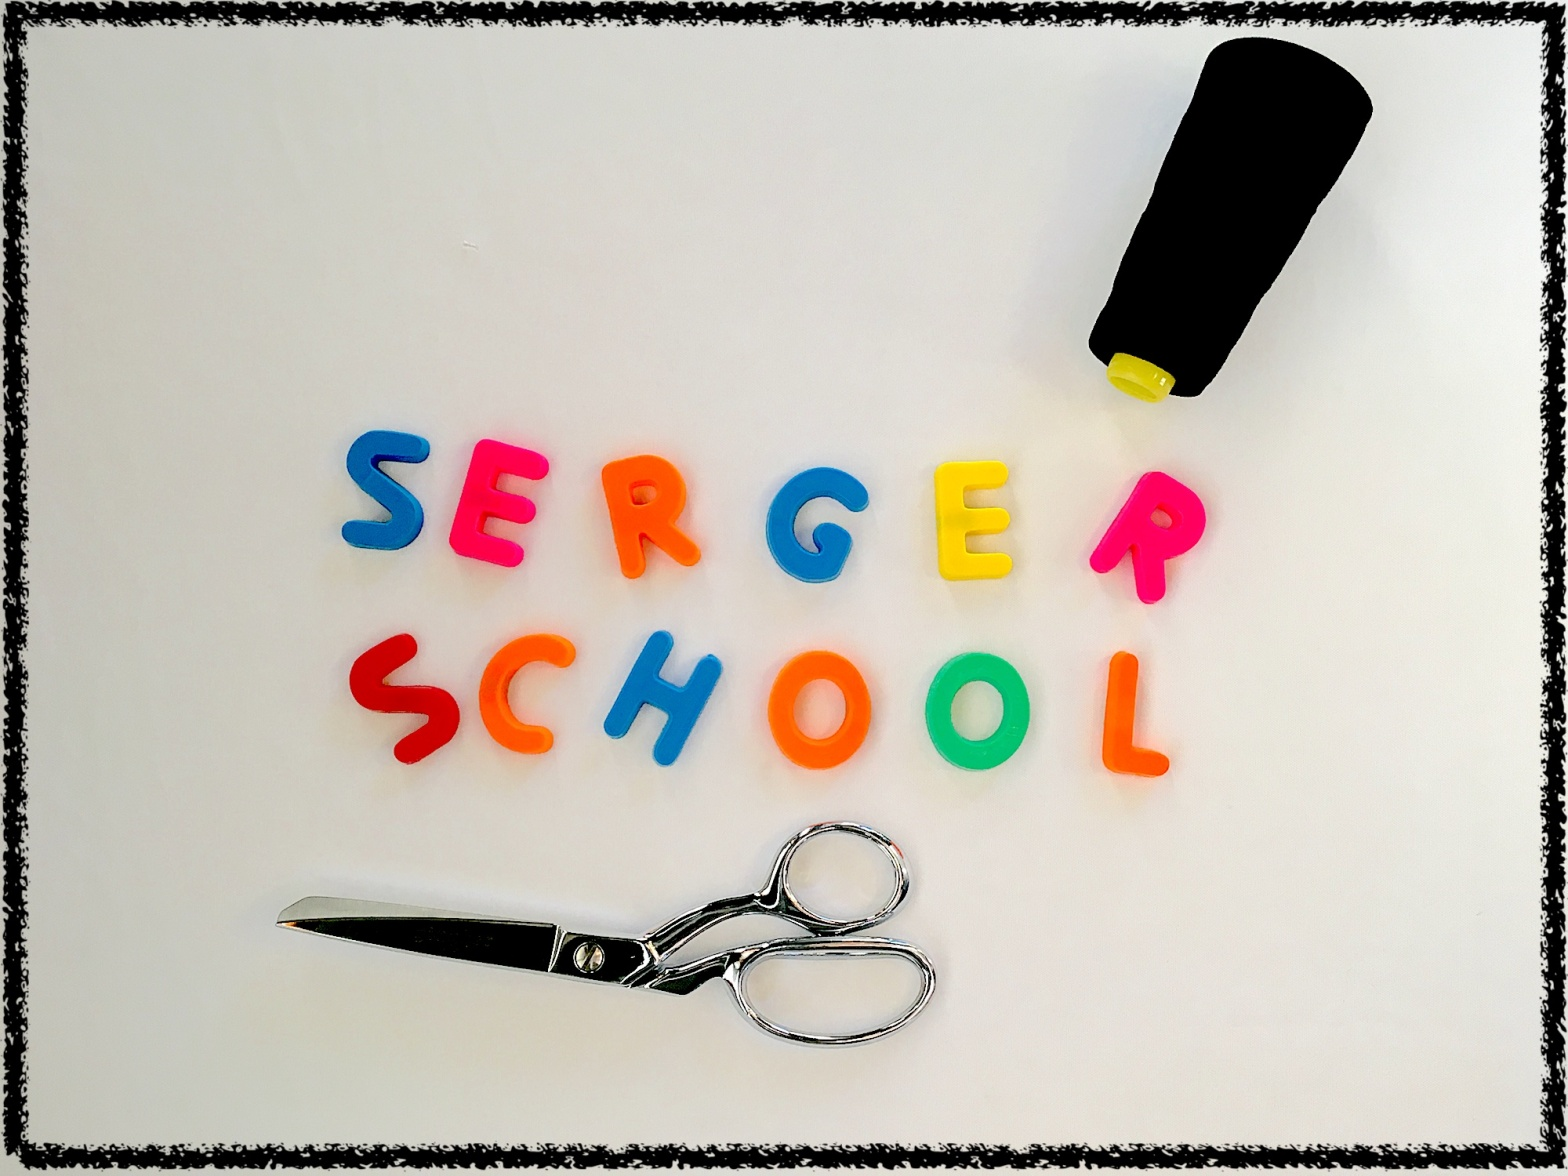 Serger School with Skirt Fixation